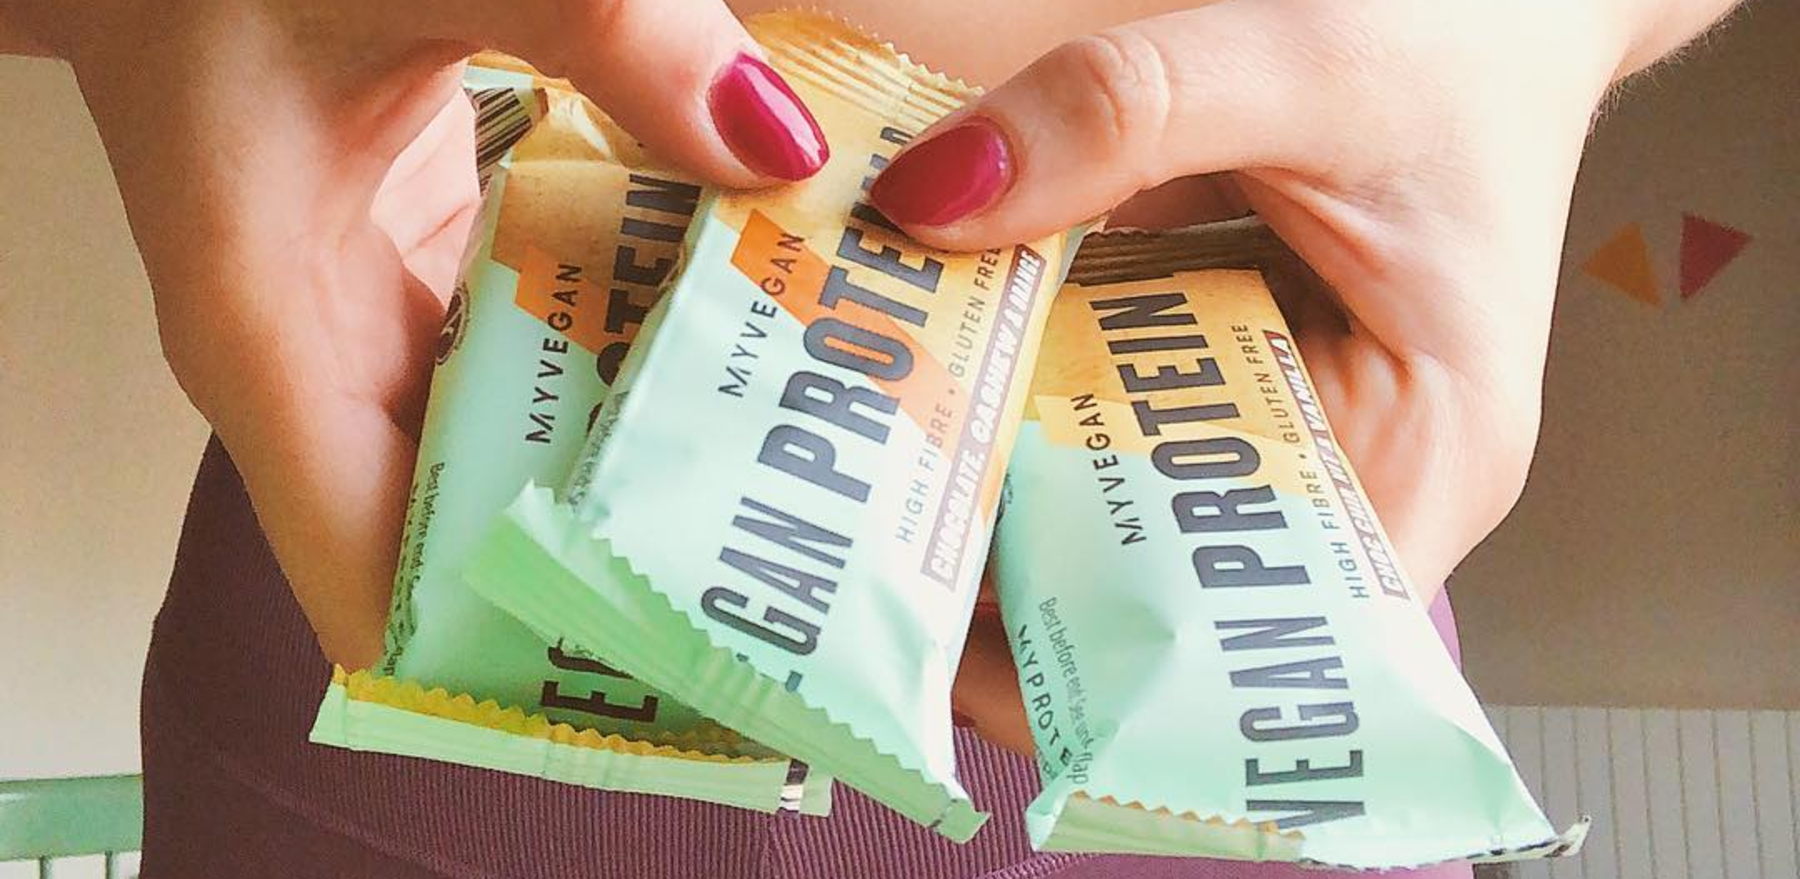 10 Healthy Vegan Snacks For When You're On The Go